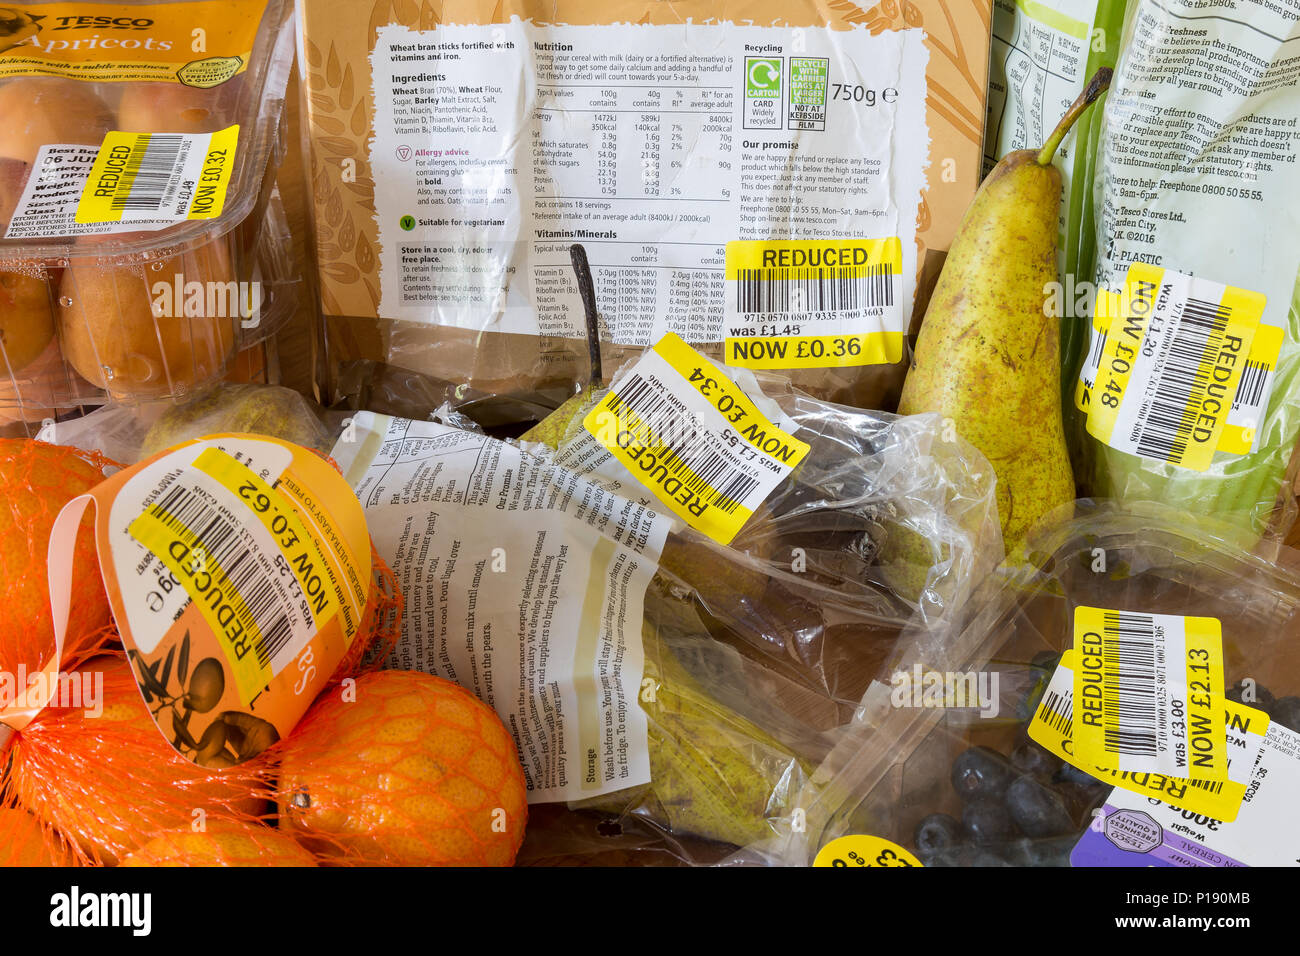 Thrifty shopping. Close up of food products purchased with yellow, reduced stickers. Fresh fruit past sell-by date, bought by family on tight  budget. - Stock Image